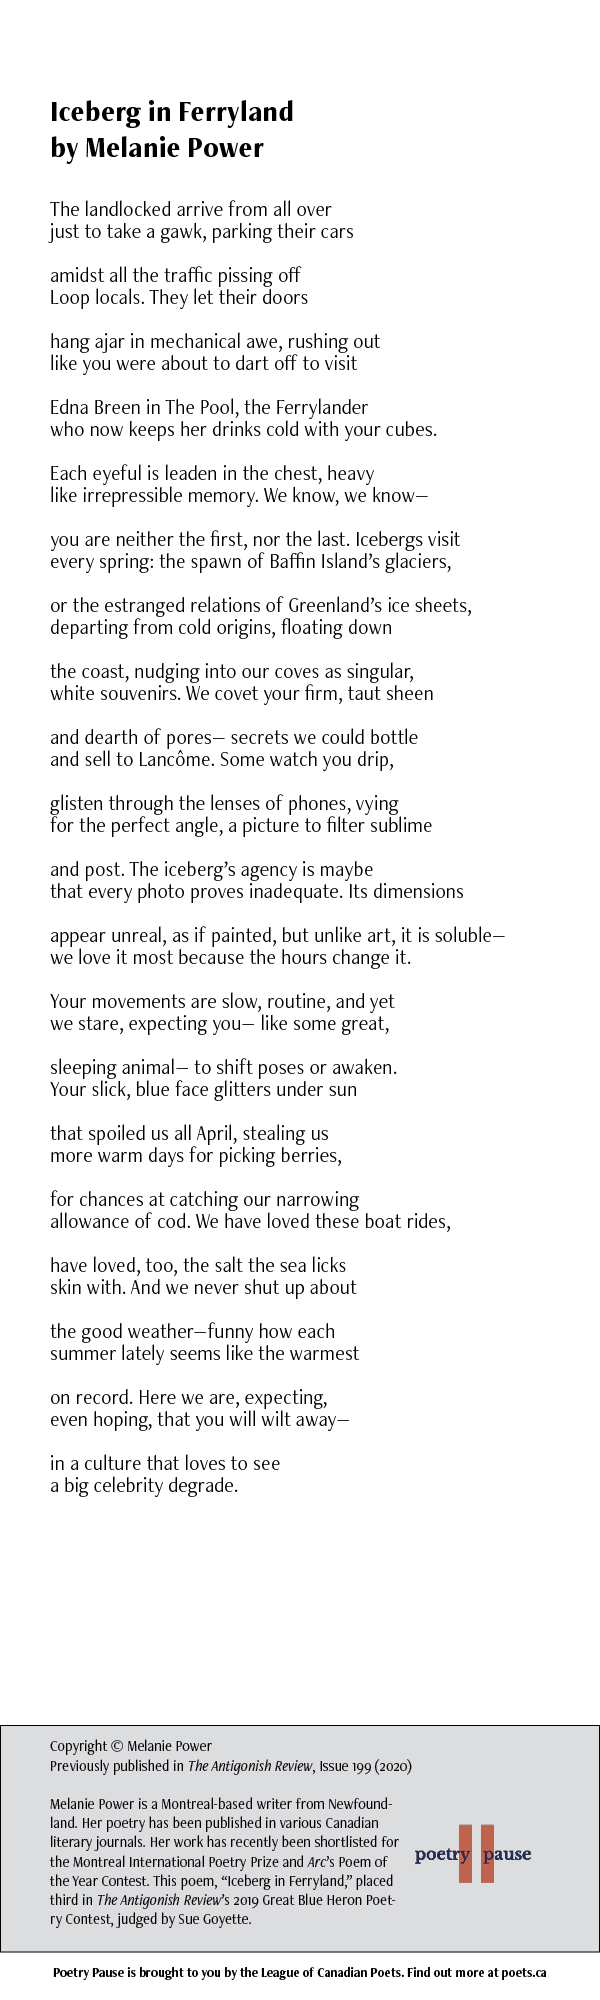 Poet Name: Melanie Power Poem Title: Icebergs in Ferryland Poem: The landlocked arrive from all over just to take a gawk, parking their cars amidst all the traffic pissing off Loop locals. They let their doors hang ajar in mechanical awe, rushing out like you were about to dart off to visit Edna Breen in The Pool, the Ferrylander who now keeps her drinks cold with your cubes. Each eyeful is leaden in the chest, heavy like irrepressible memory. We know, we know— you are neither the first, nor the last. Icebergs visit every spring: the spawn of Baffin Island's glaciers, or the estranged relations of Greenland's ice sheets, departing from cold origins, floating down the coast, nudging into our coves as singular, white souvenirs. We covet your firm, taut sheen and dearth of pores— secrets we could bottle and sell to Lancôme. Some watch you drip, glisten through the lenses of phones, vying for the perfect angle, a picture to filter sublime and post. The iceberg's agency is maybe that every photo proves inadequate. Its dimensions appear unreal, as if painted, but unlike art, it is soluble— we love it most because the hours change it. Your movements are slow, routine, and yet we stare, expecting you— like some great, sleeping animal— to shift poses or awaken. Your slick, blue face glitters under sun that spoiled us all April, stealing us more warm days for picking berries, for chances at catching our narrowing allowance of cod. We have loved these boat rides, have loved, too, the salt the sea licks skin with. And we never shut up about the good weather—funny how each summer lately seems like the warmest on record. Here we are, expecting, even hoping, that you will wilt away— in a culture that loves to see a big celebrity degrade. End of Poem. Credits: Copyright © Melanie Power Previously published in The Antigonish Review, Issue 199 (2020) Melanie Power is a Montreal-based writer from Newfoundland. Her poetry has been published in various Canadian literary journals. Her wo